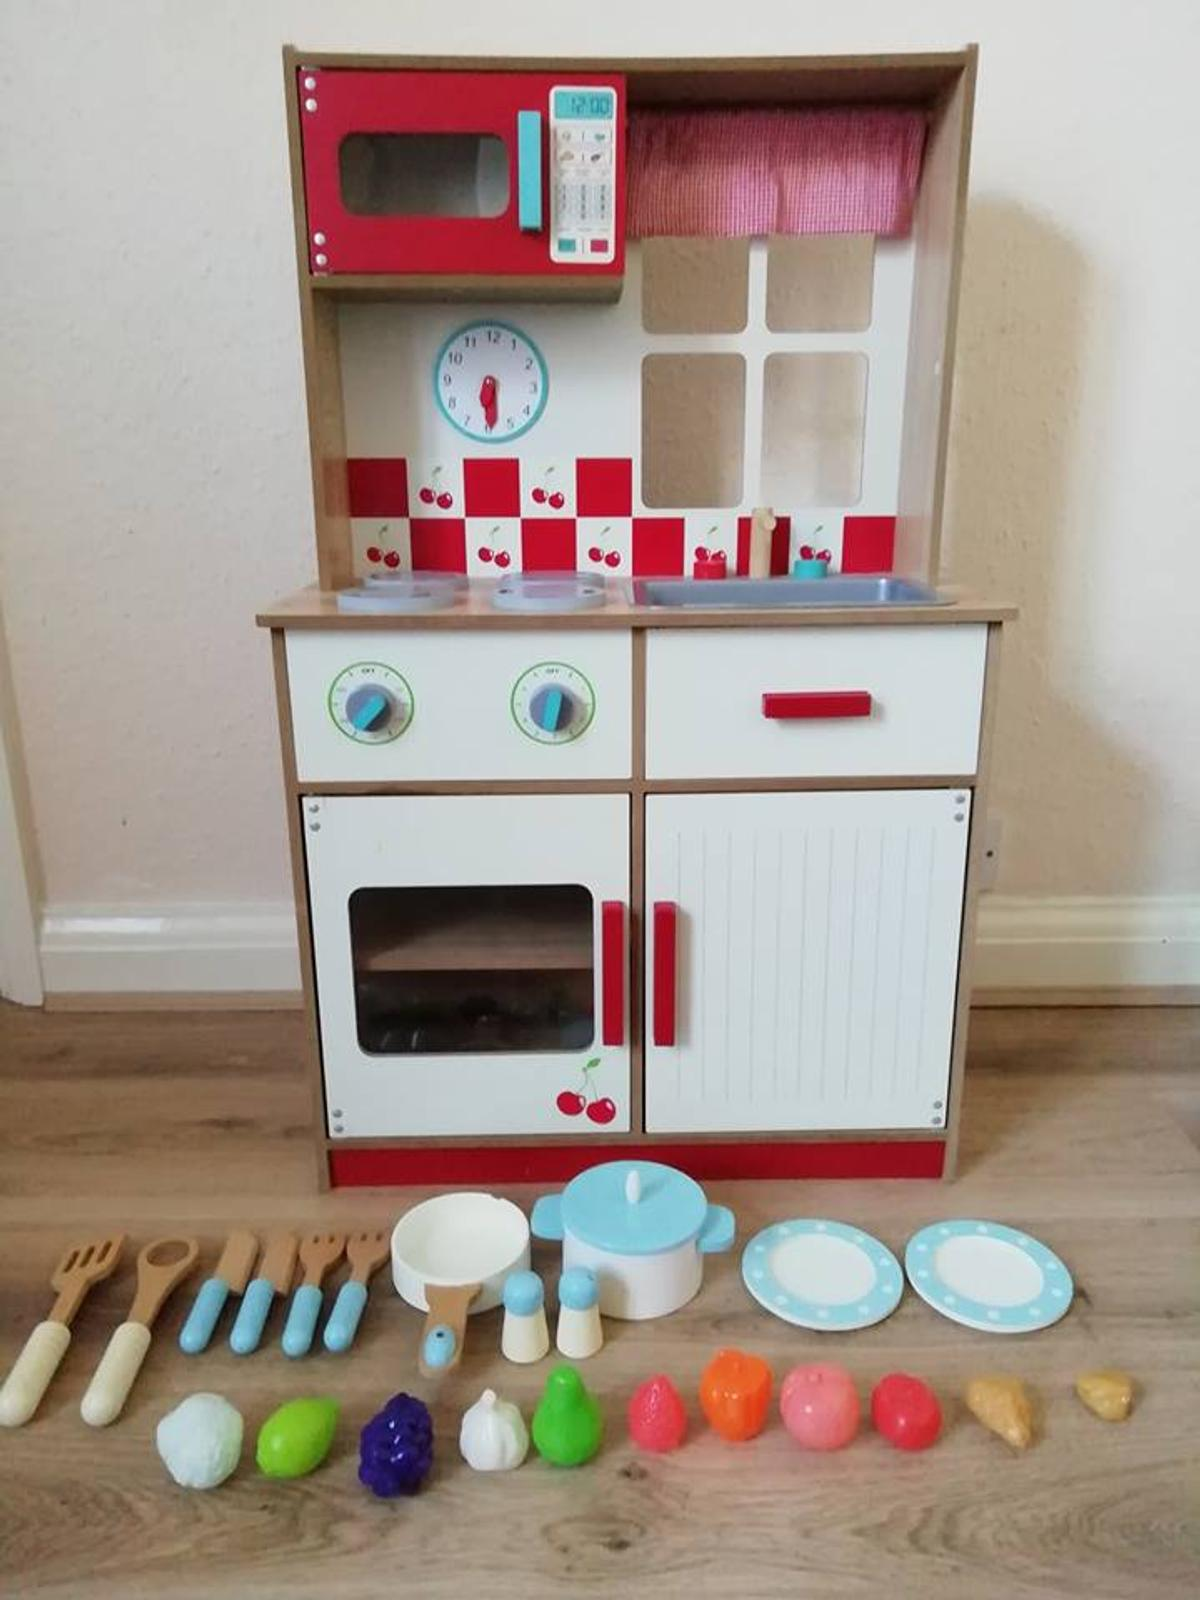 Asda George Wooden Deluxe Play Toy Kitchen In Le5 Leicester